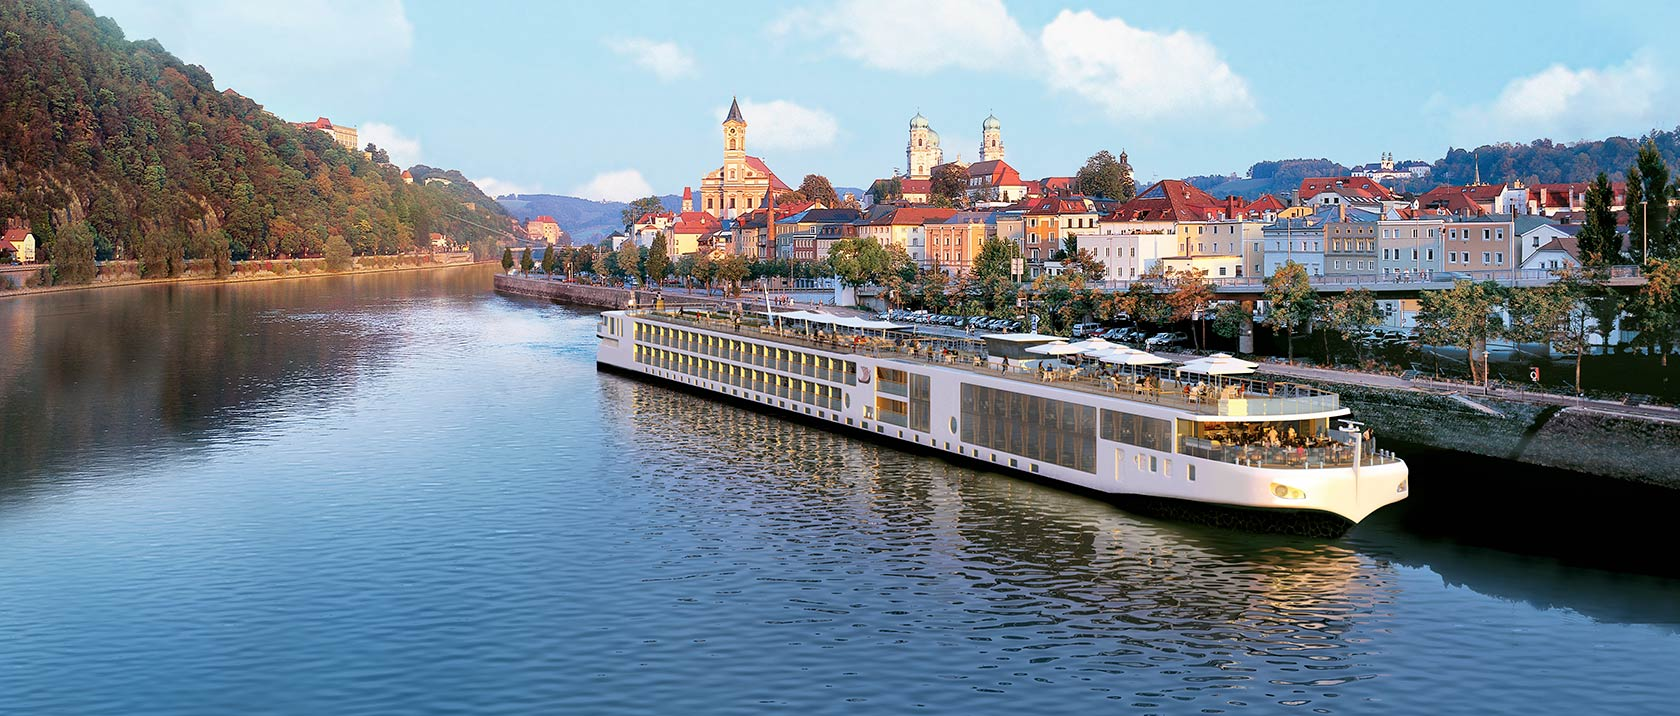 Viking river ship sailing past Passau, Germany